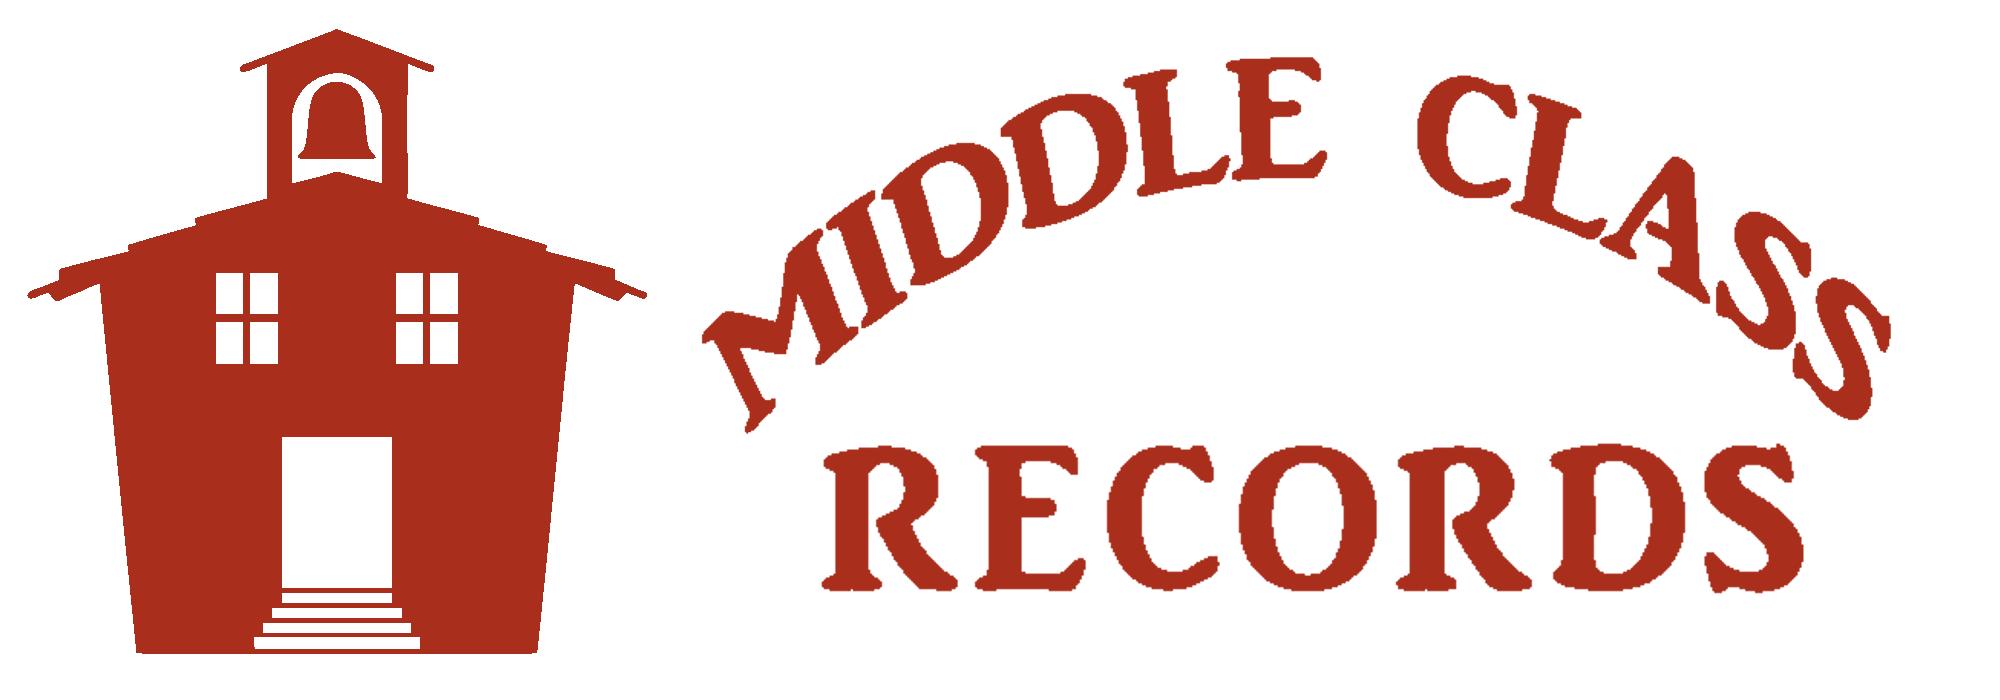 Schedule clipart class record. Middle records llc